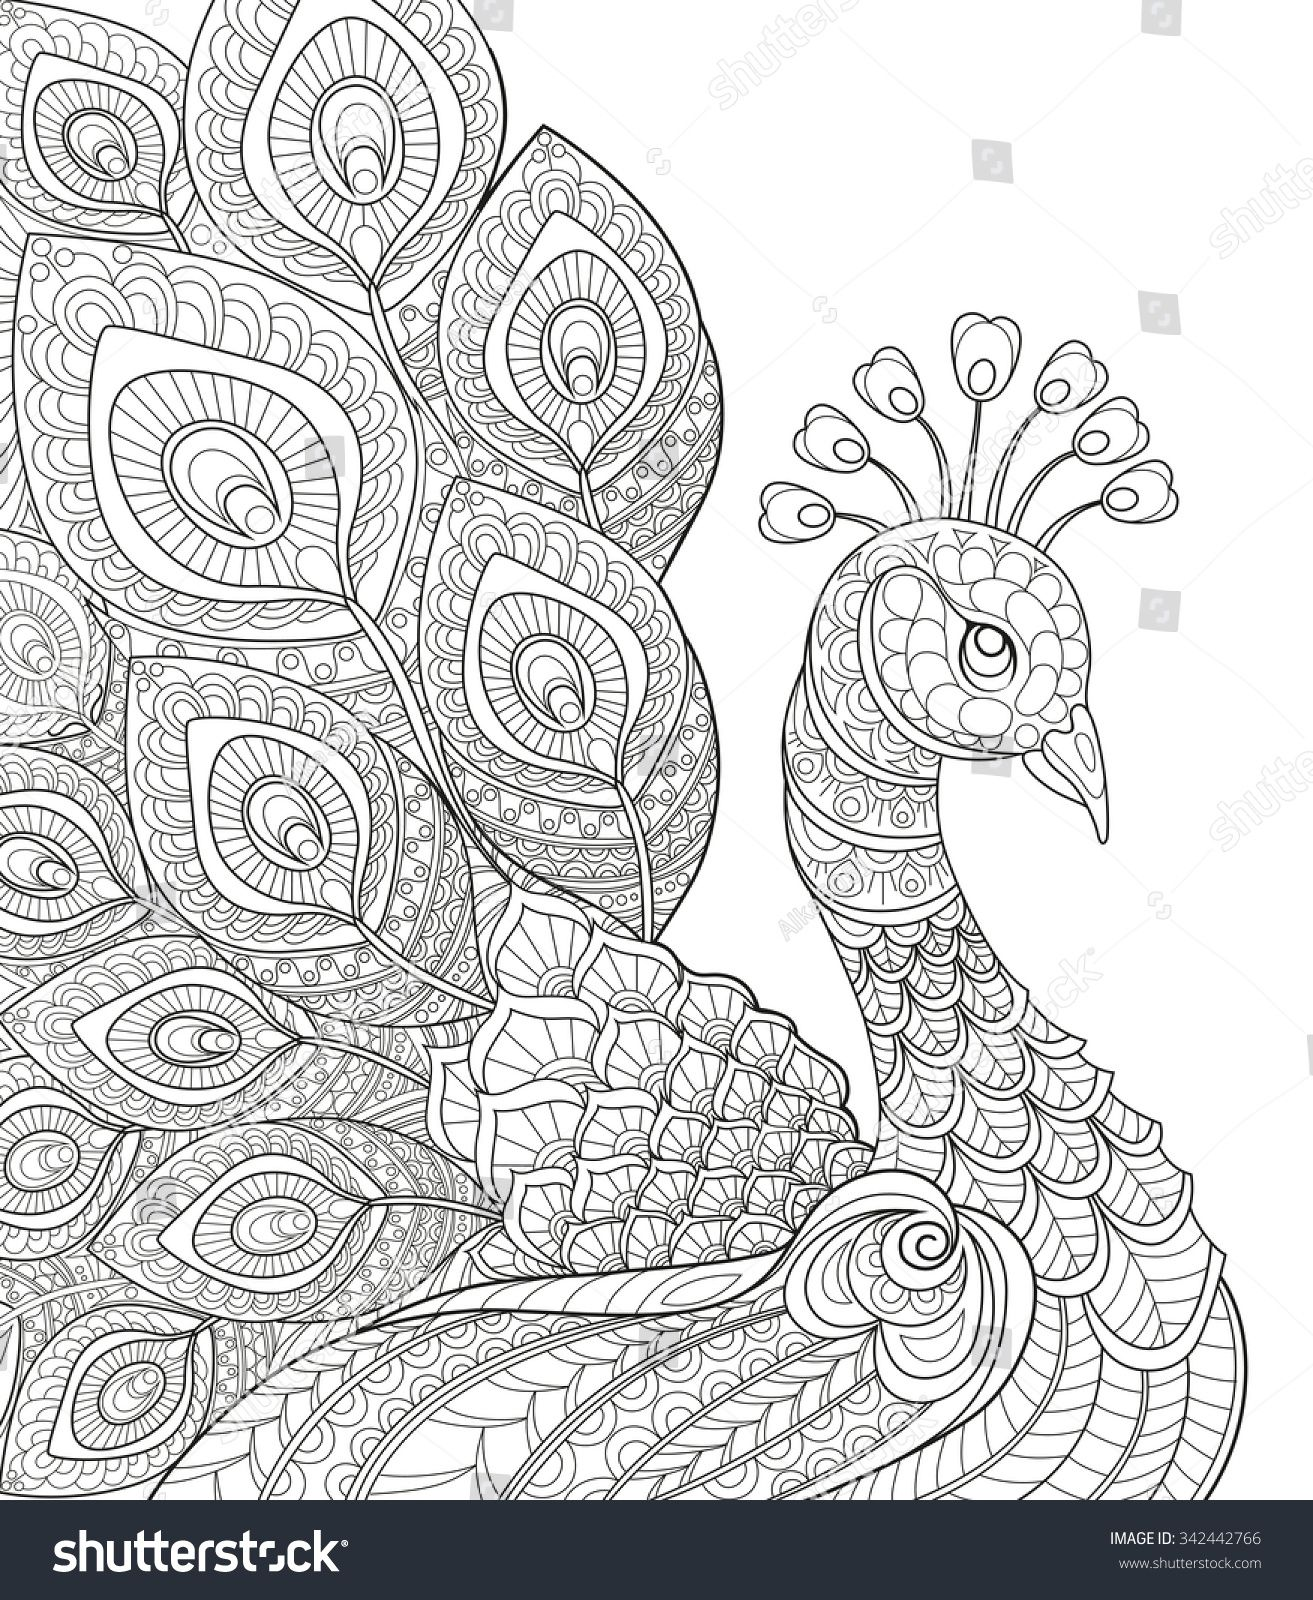 New Coloring Pages | Free Coloring Pages | crayola.com | 1600x1313